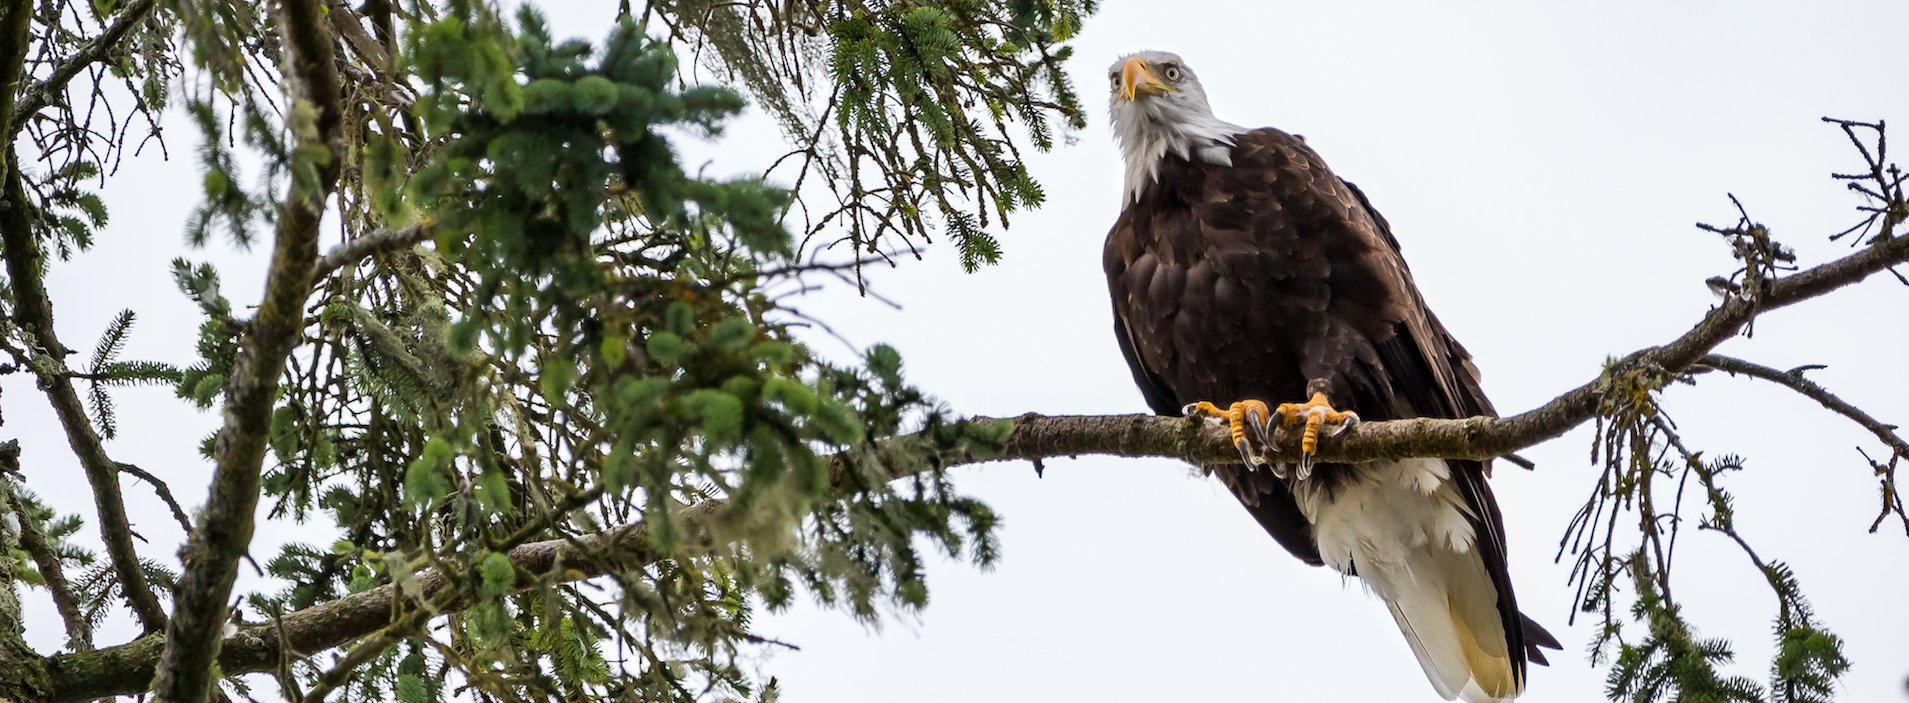 Bald Eagle perched on a thick tree branch staring down into the camera